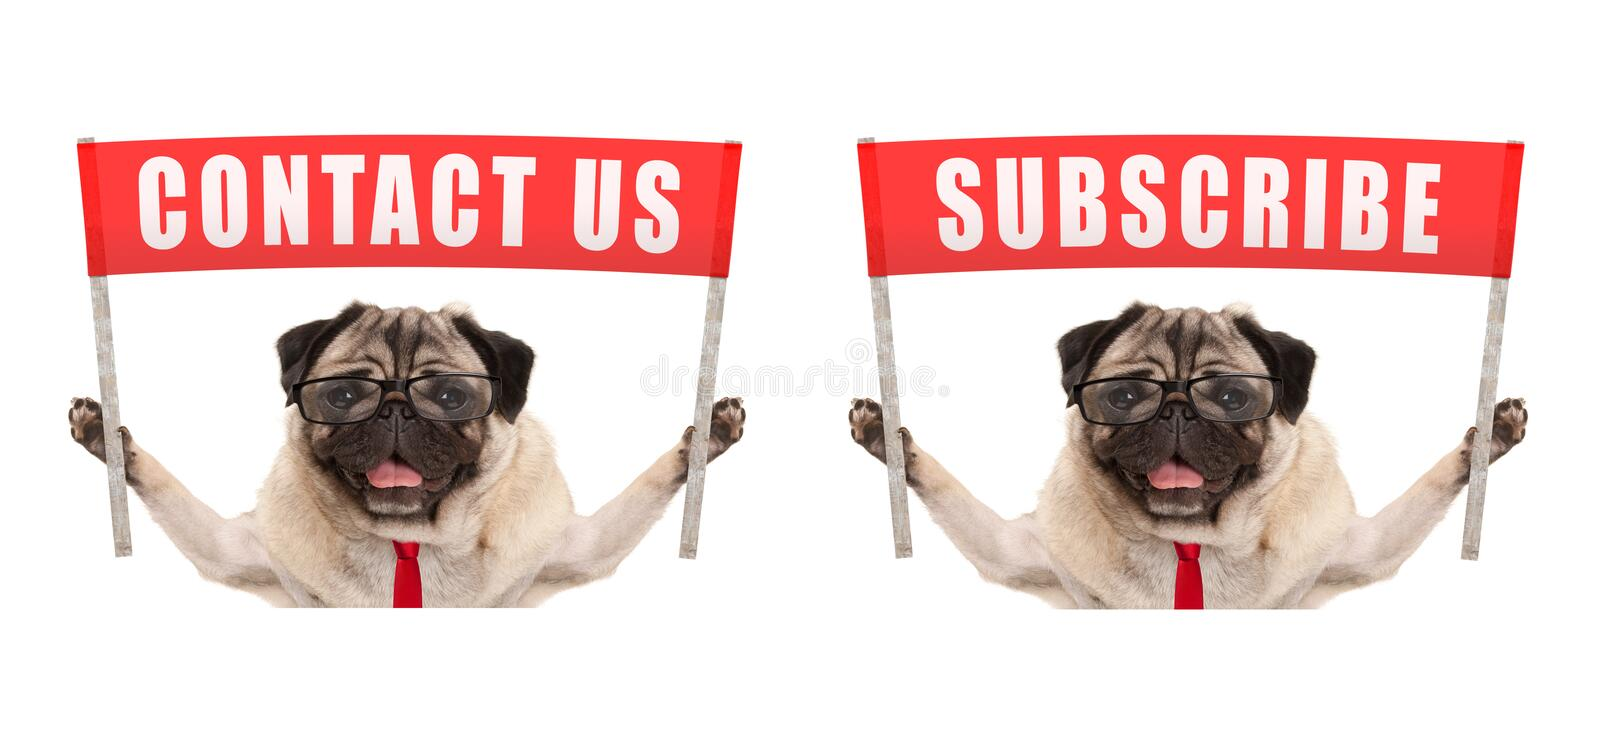 Business pug dog holding up red banner sign with text contact us and subscribe. Isolated on white background stock image